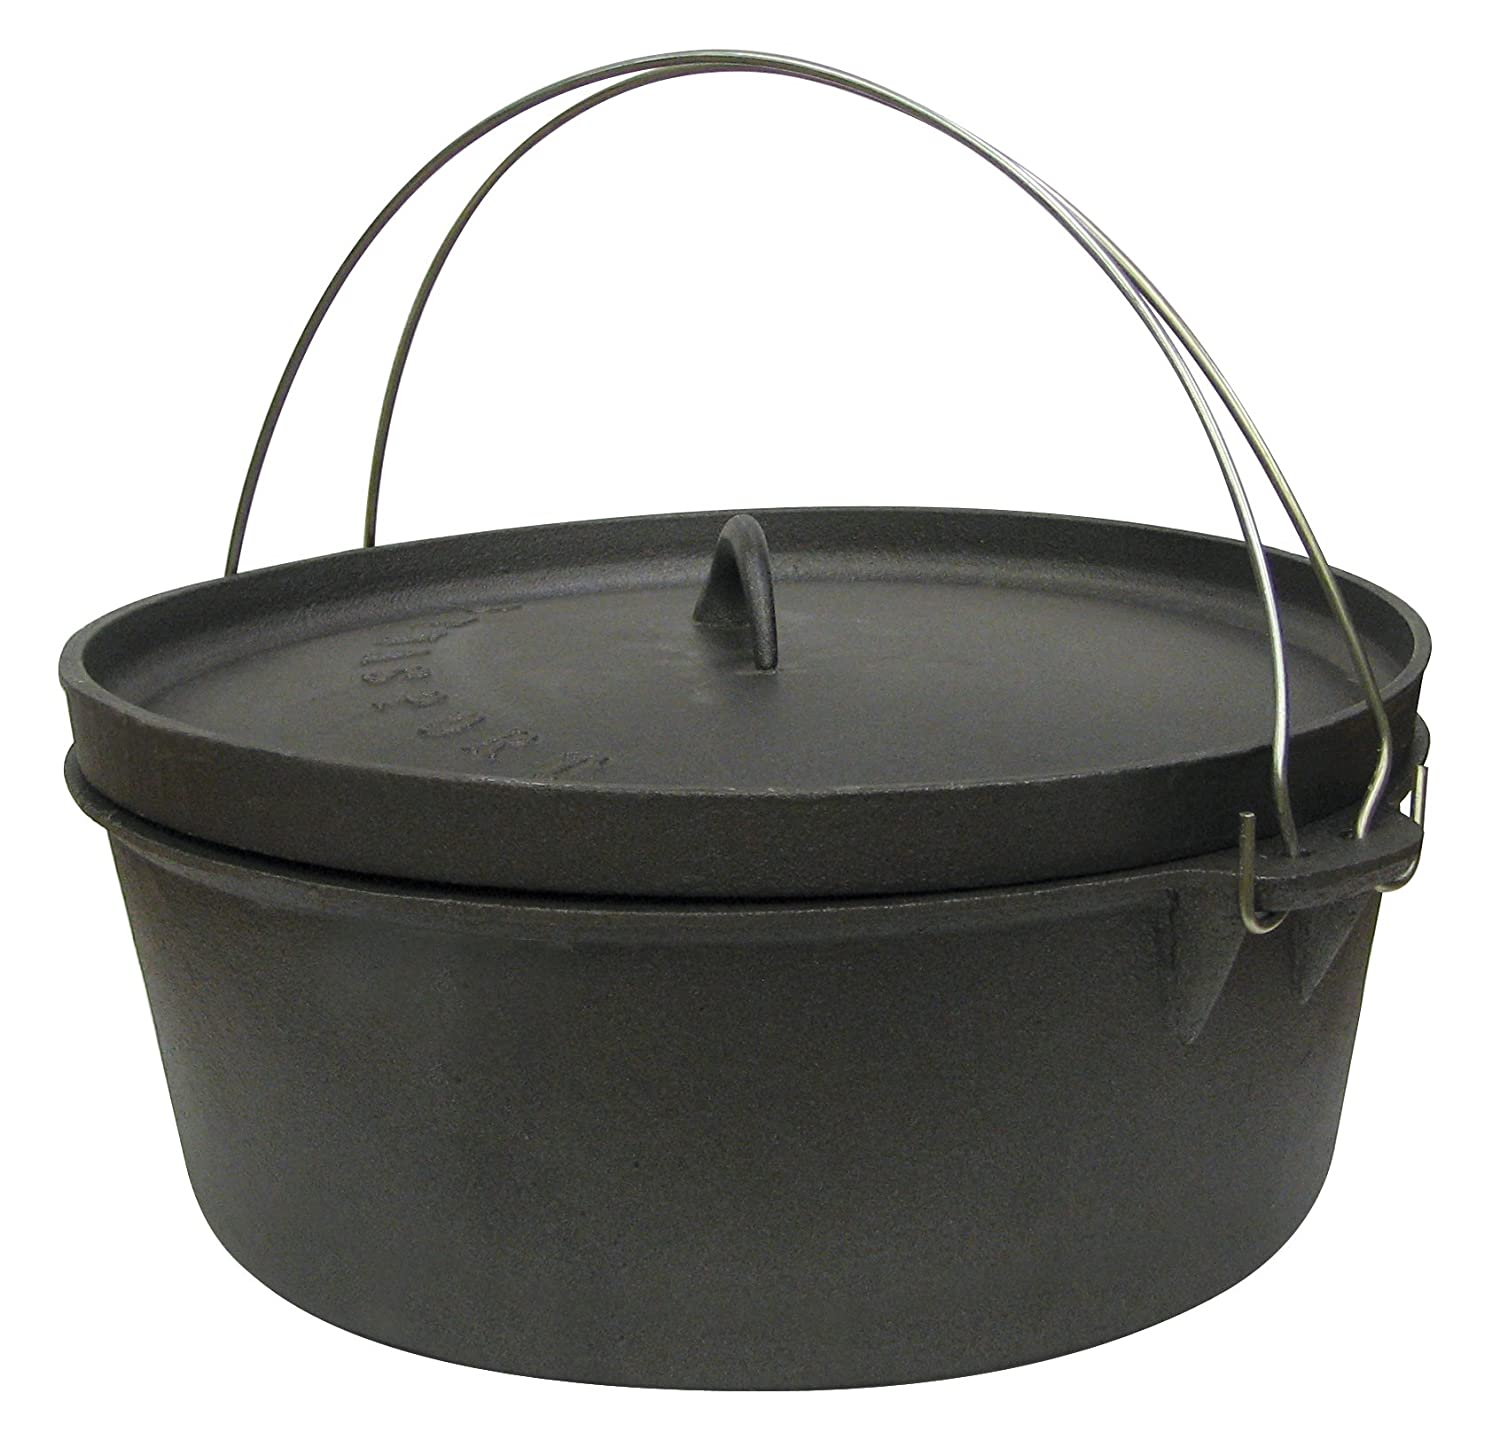 Cheap cajun cookware dutch ovens 6 quart seasoned cast iron dutch oven - Amazon Com Stansport Non Seasoned Cast Iron Dutch Oven Flat Bottom Camping Cooking Utensils Sports Outdoors